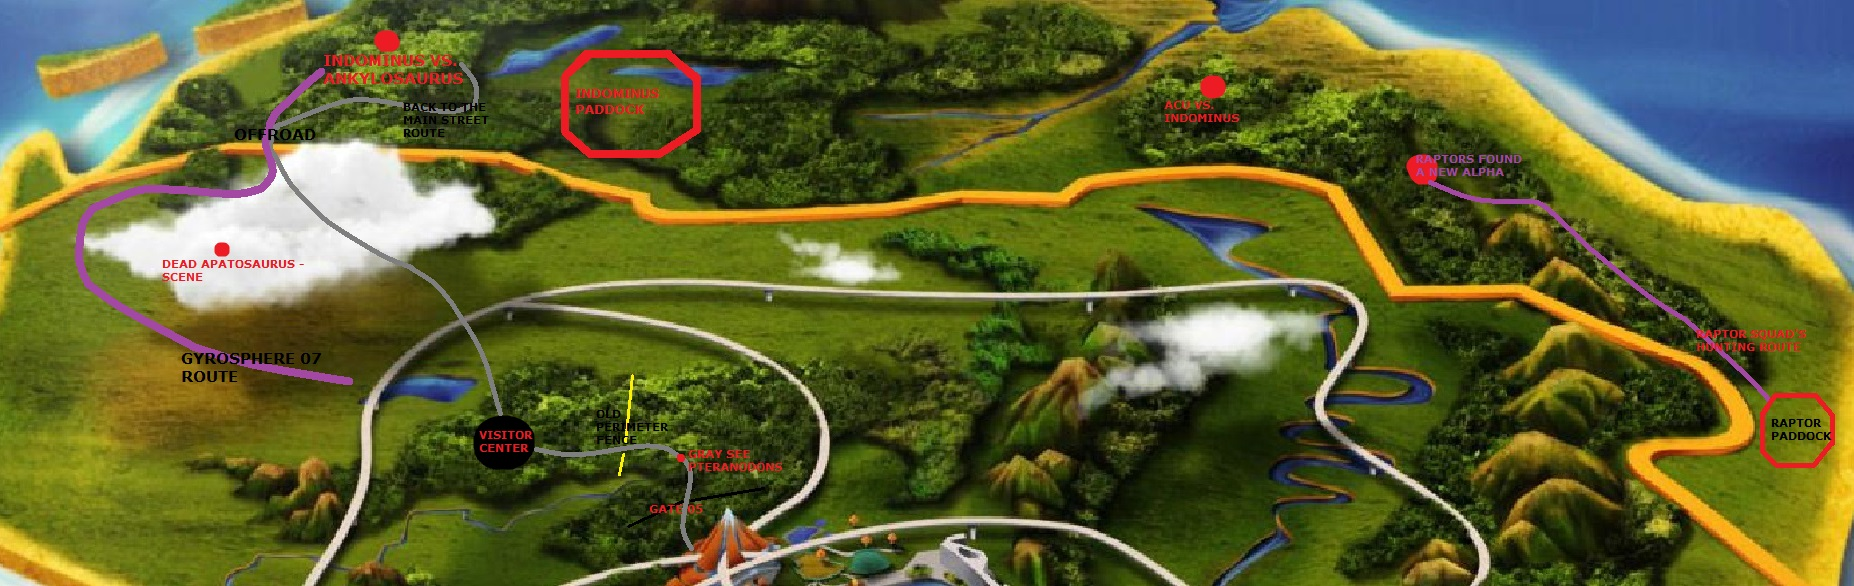 Image jurassic world map cleang jurassic park wiki fandom jurassic world map cleang gumiabroncs Images